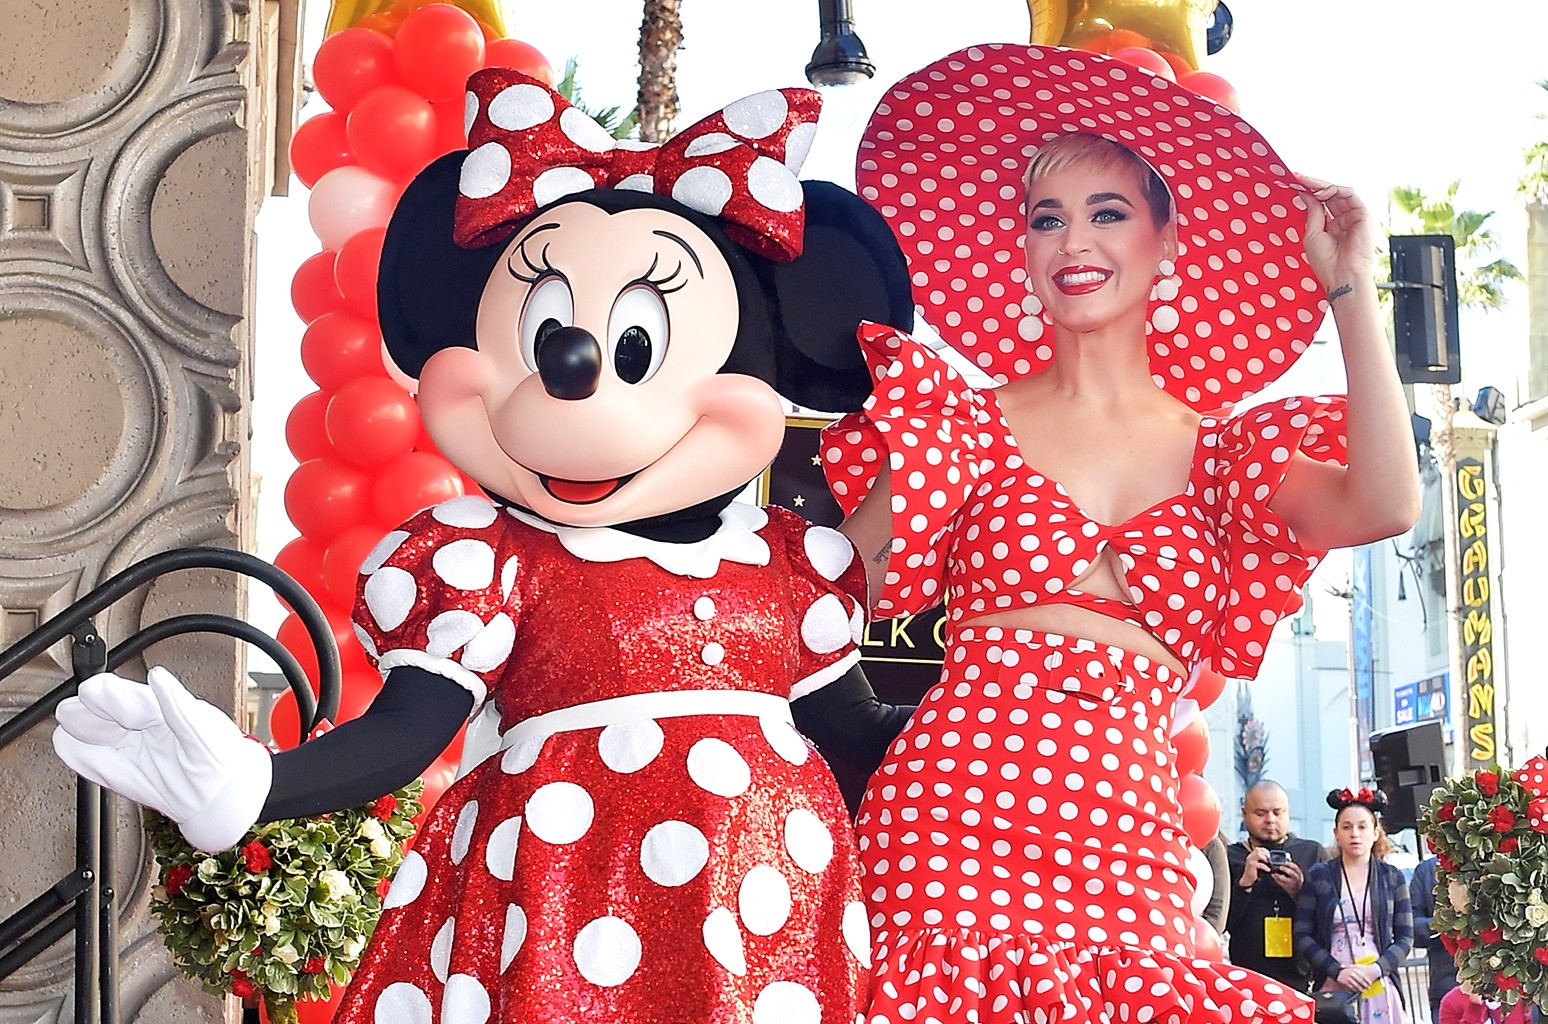 Minnie Mouse Katy Perry